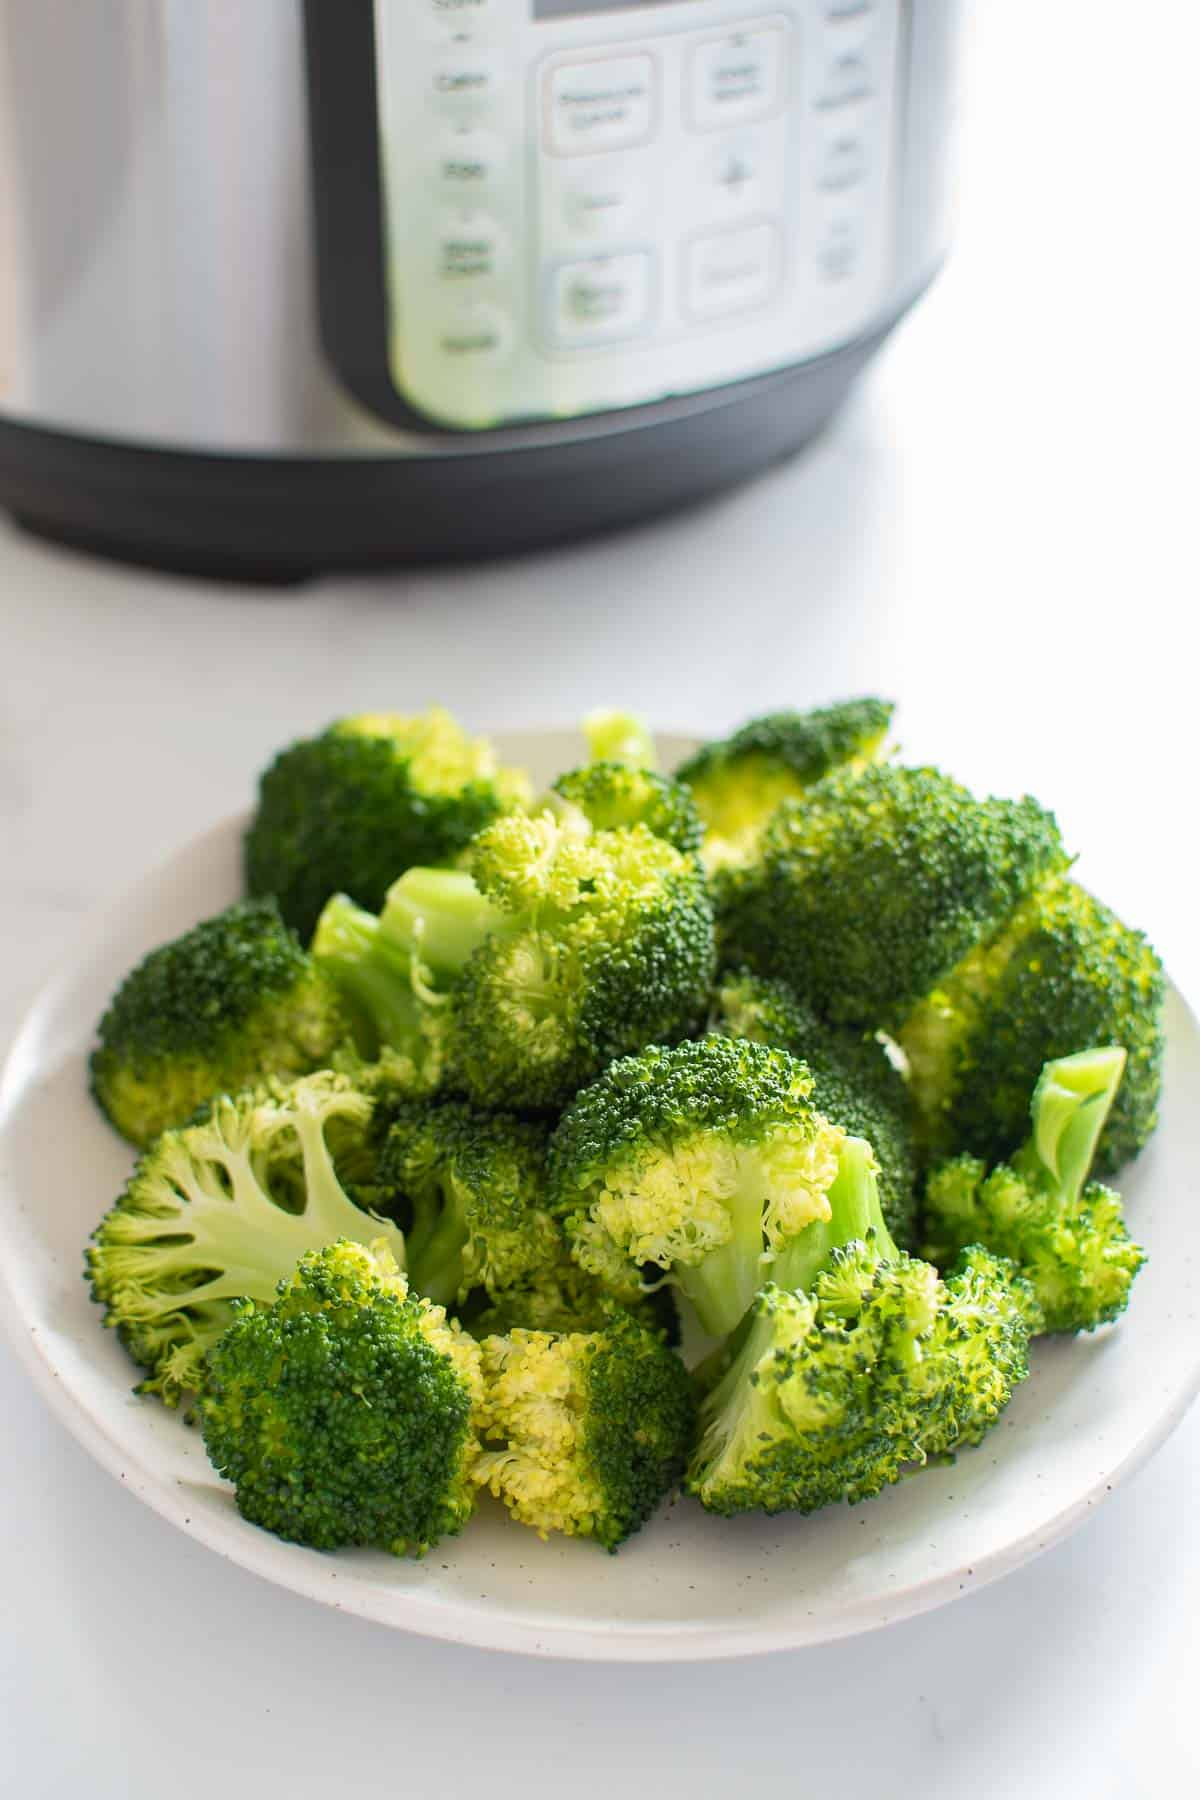 A plate with steamed broccoli florets, with an instant pot in the background.